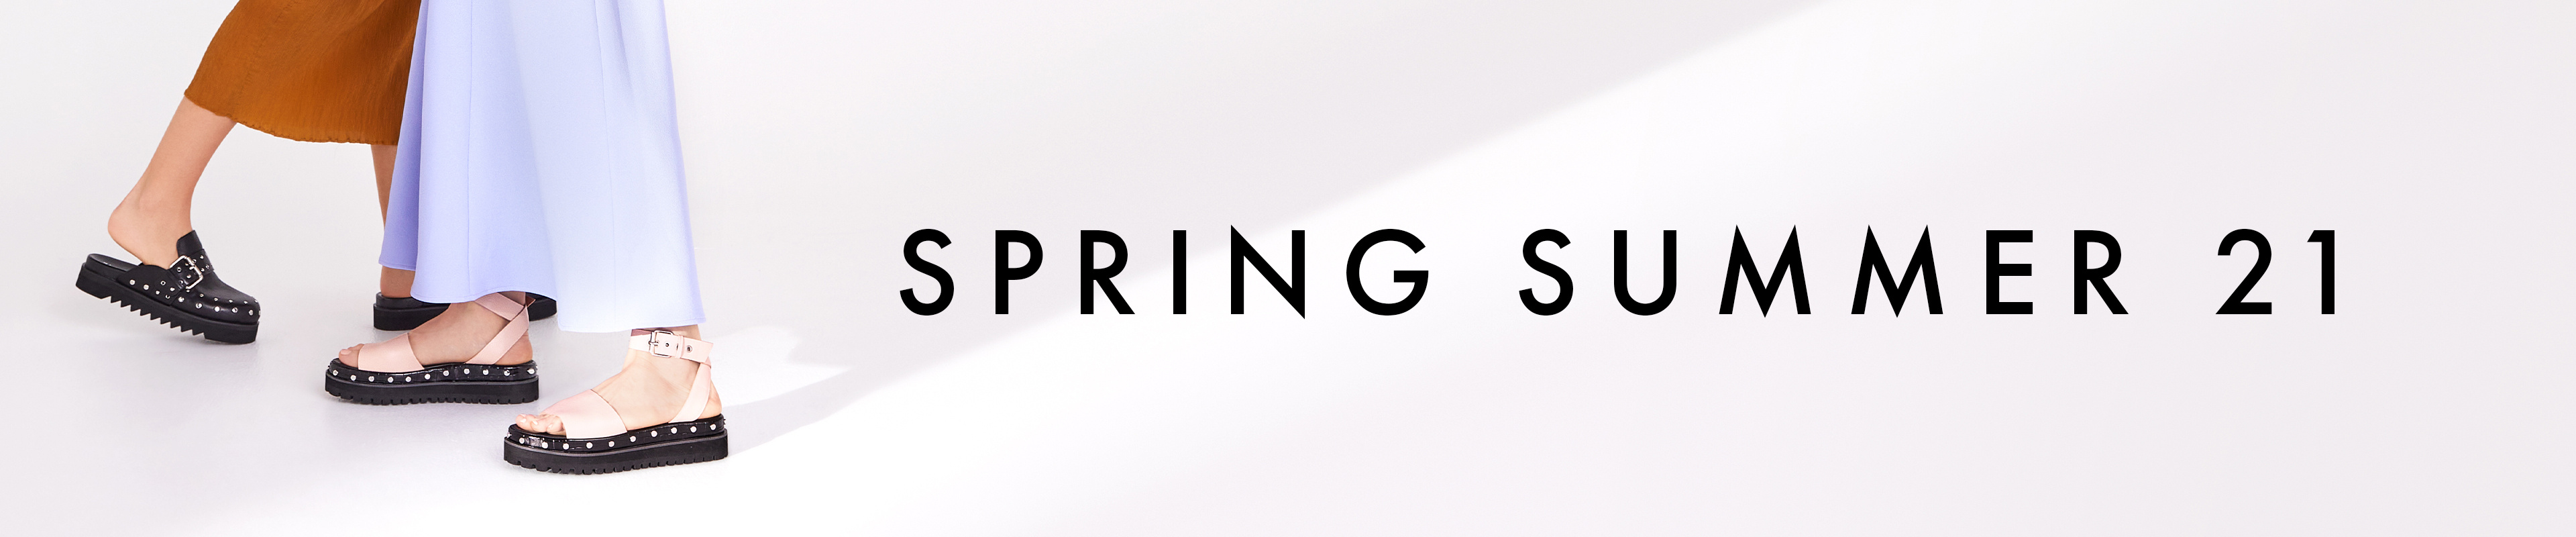 Spring Summer 21 Collection